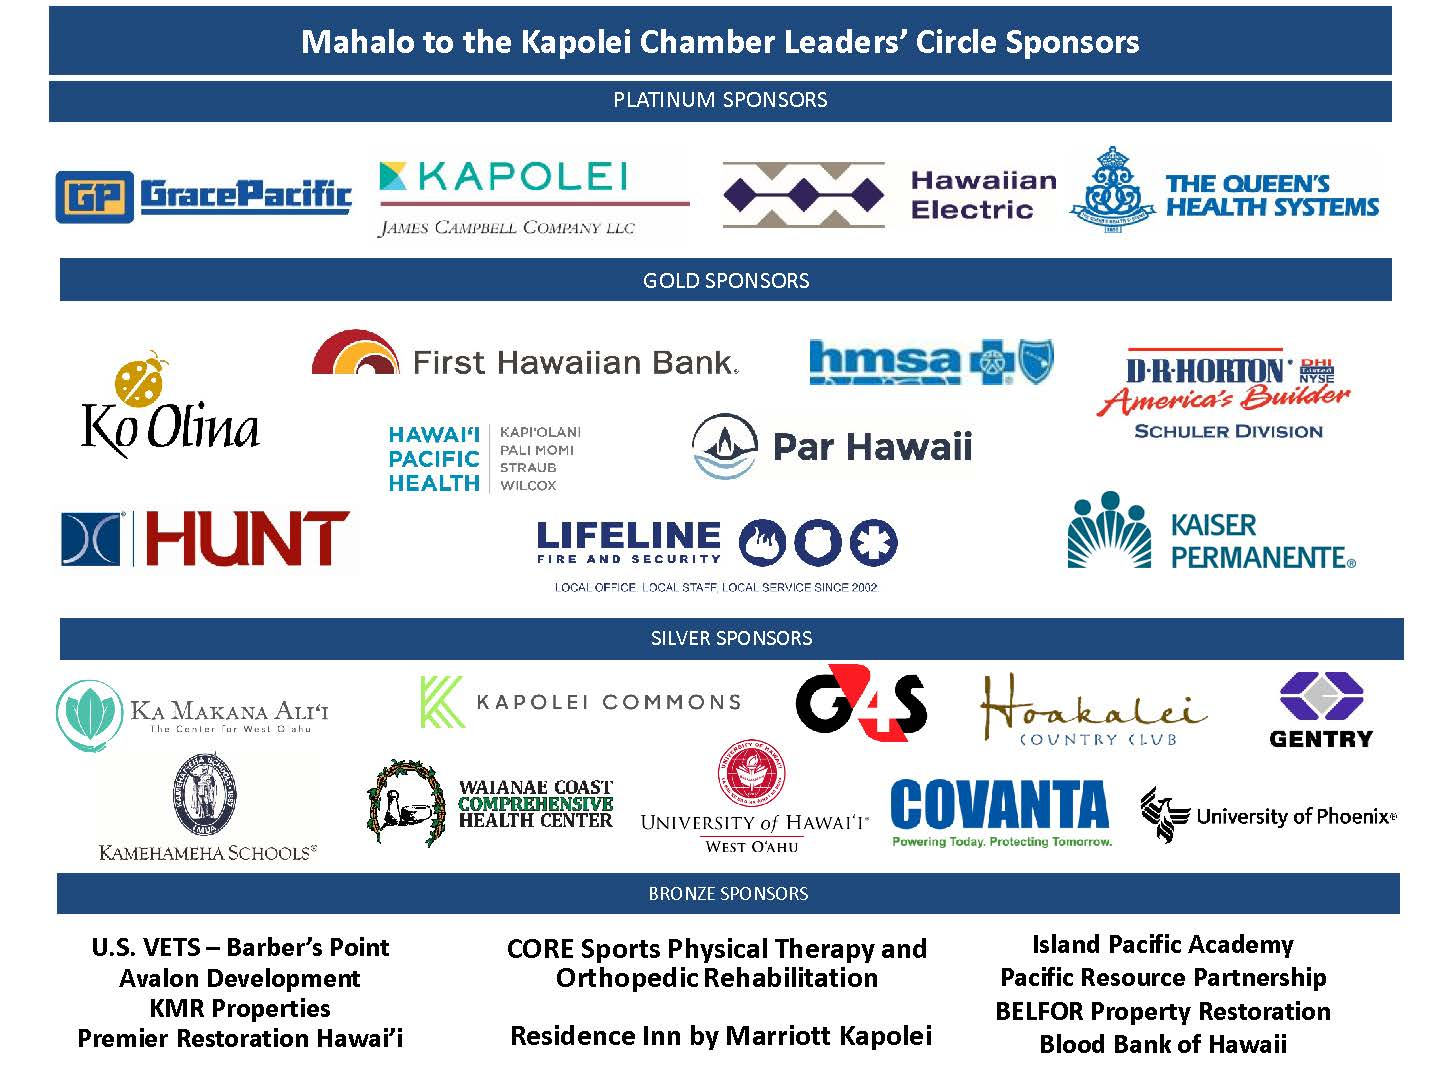 MAHALO TO OUR SPONSORS (10312021)